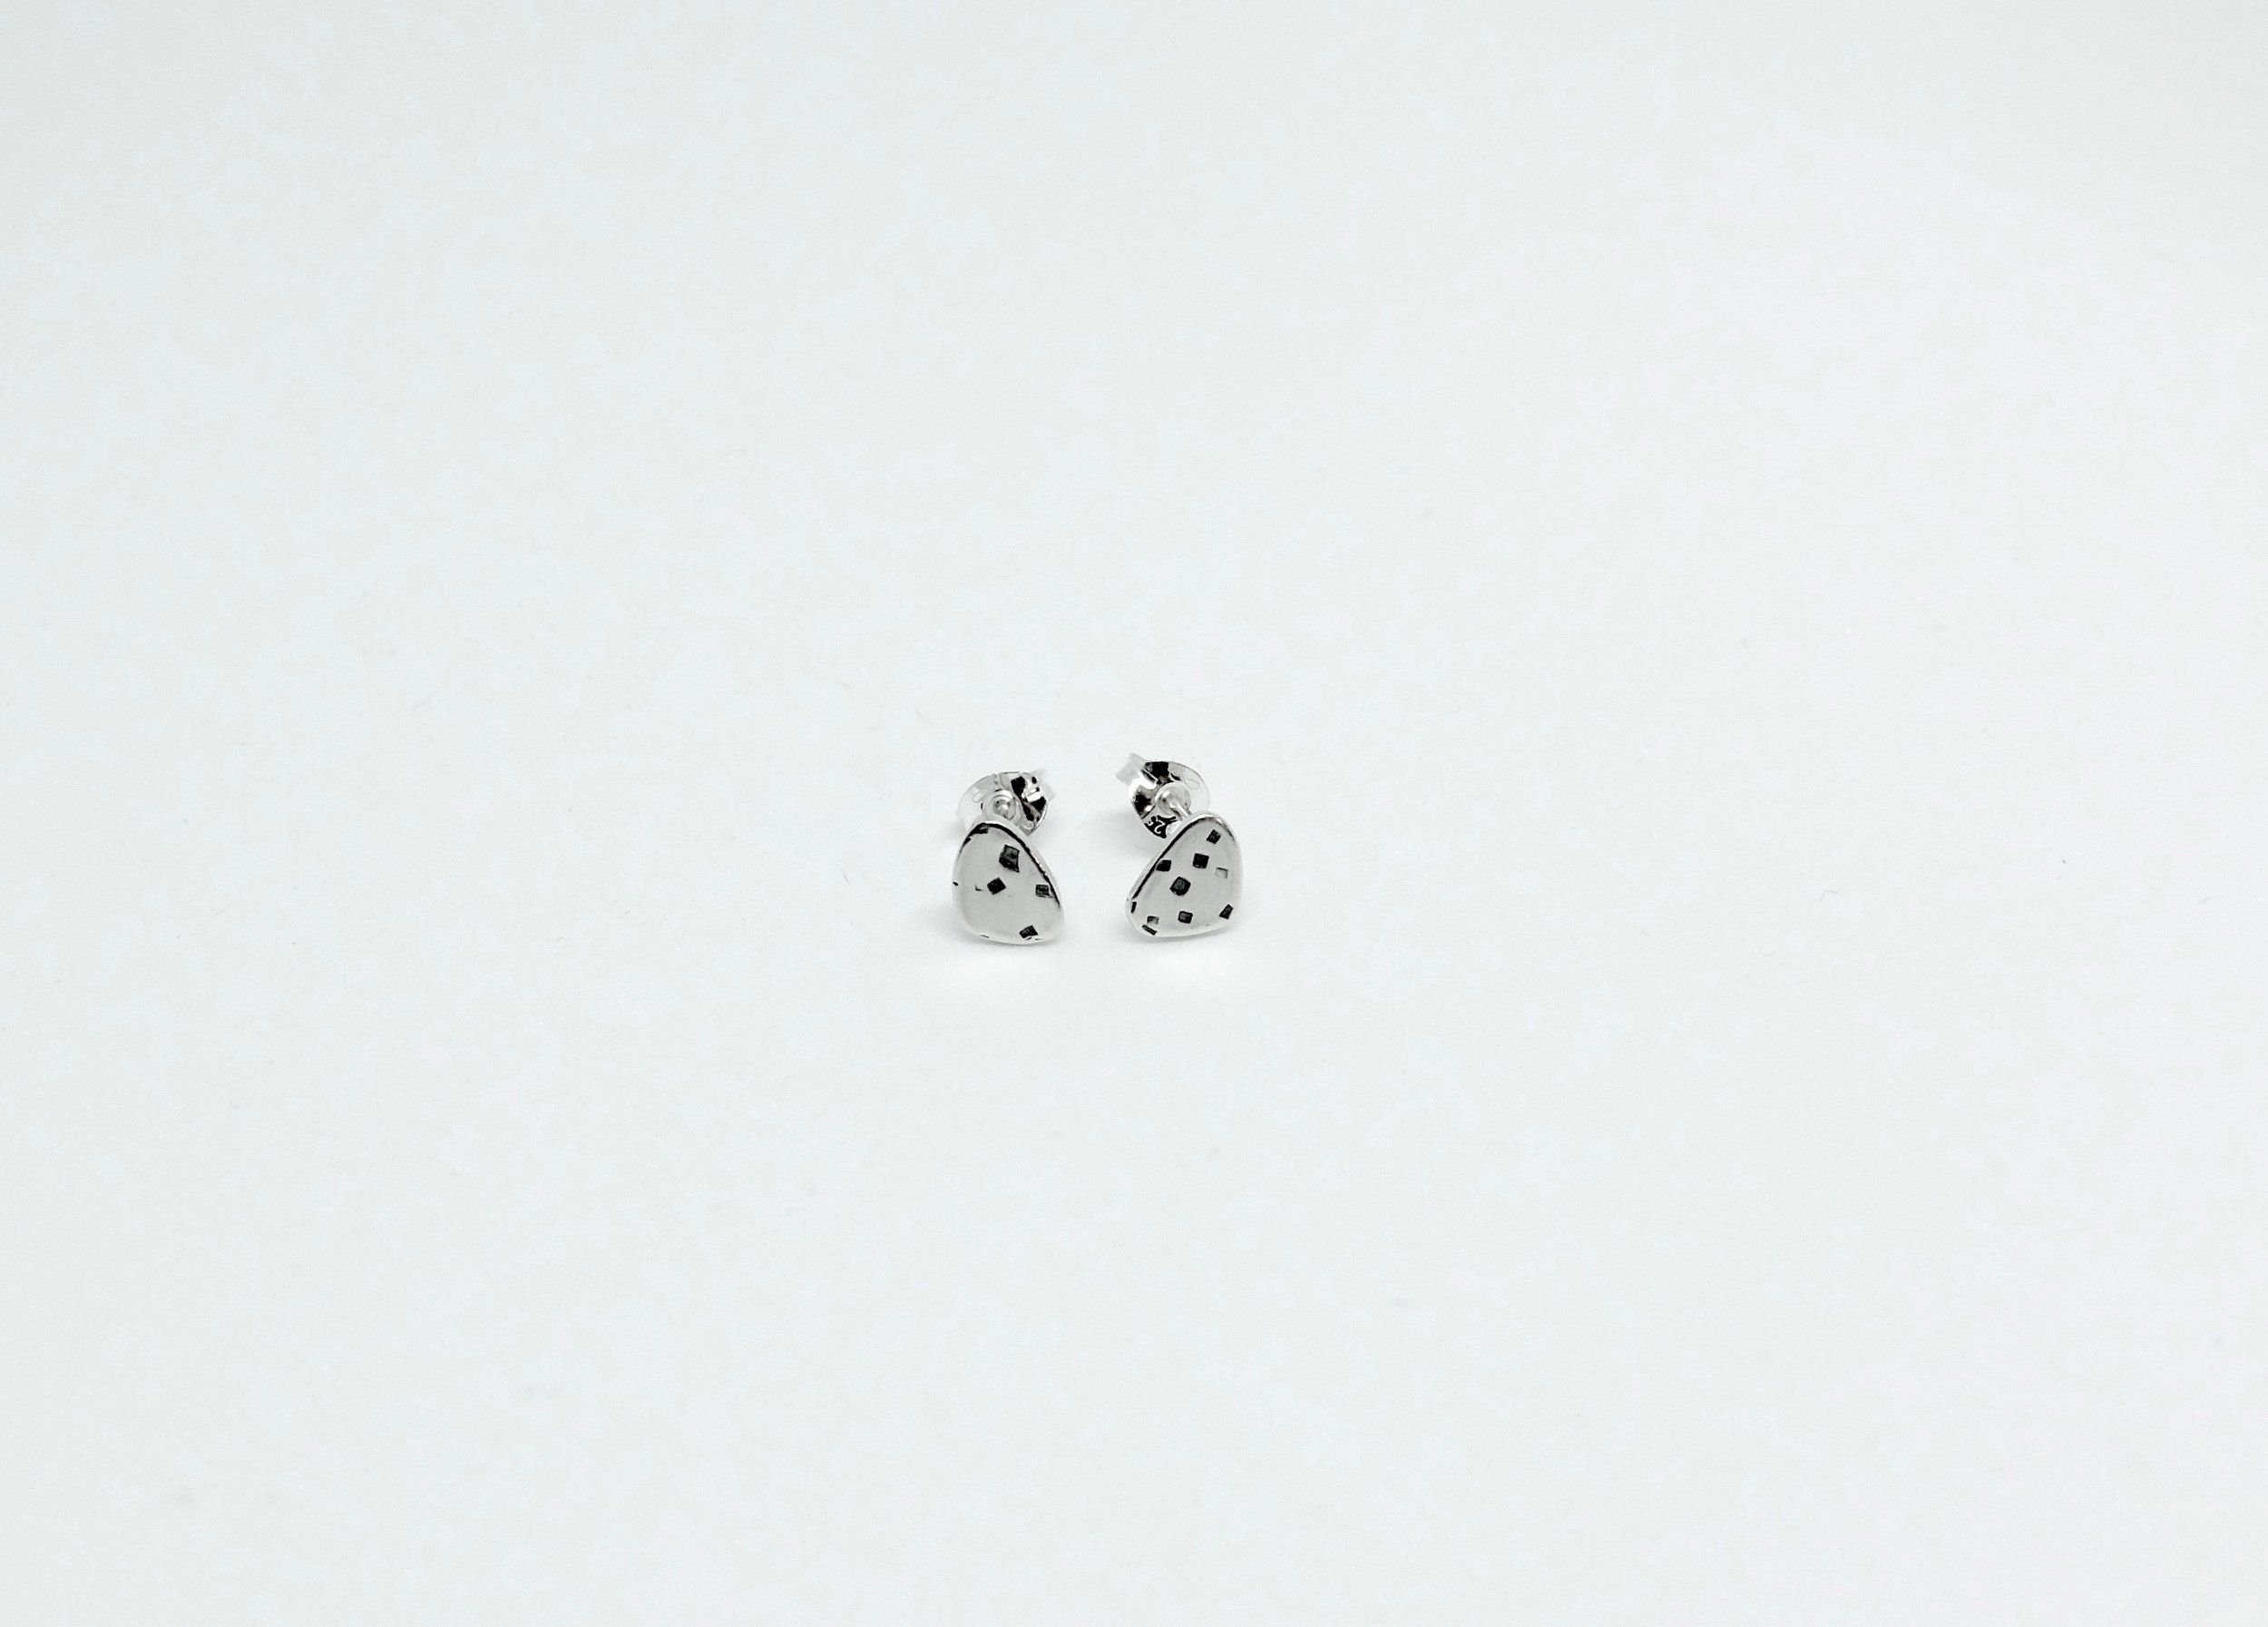 XS Sterling silver freckled texture studs. Available in XS,S,M,L,XL